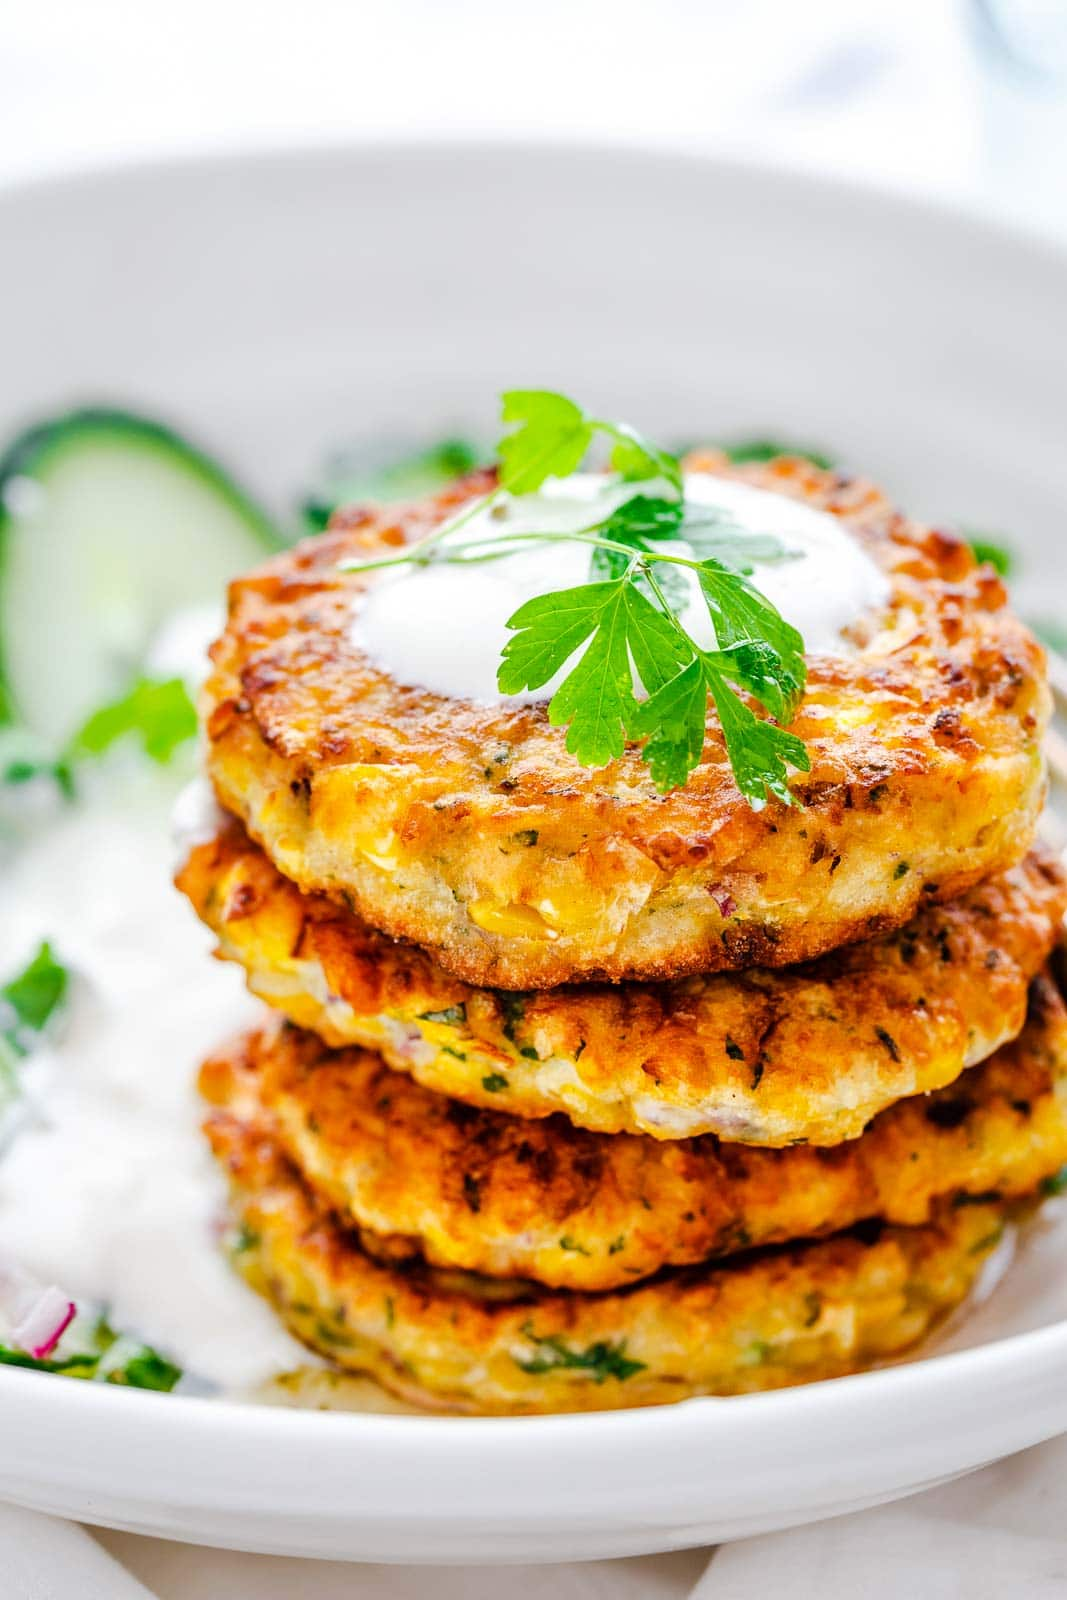 4 corn fritters stacked on each other in a white plate